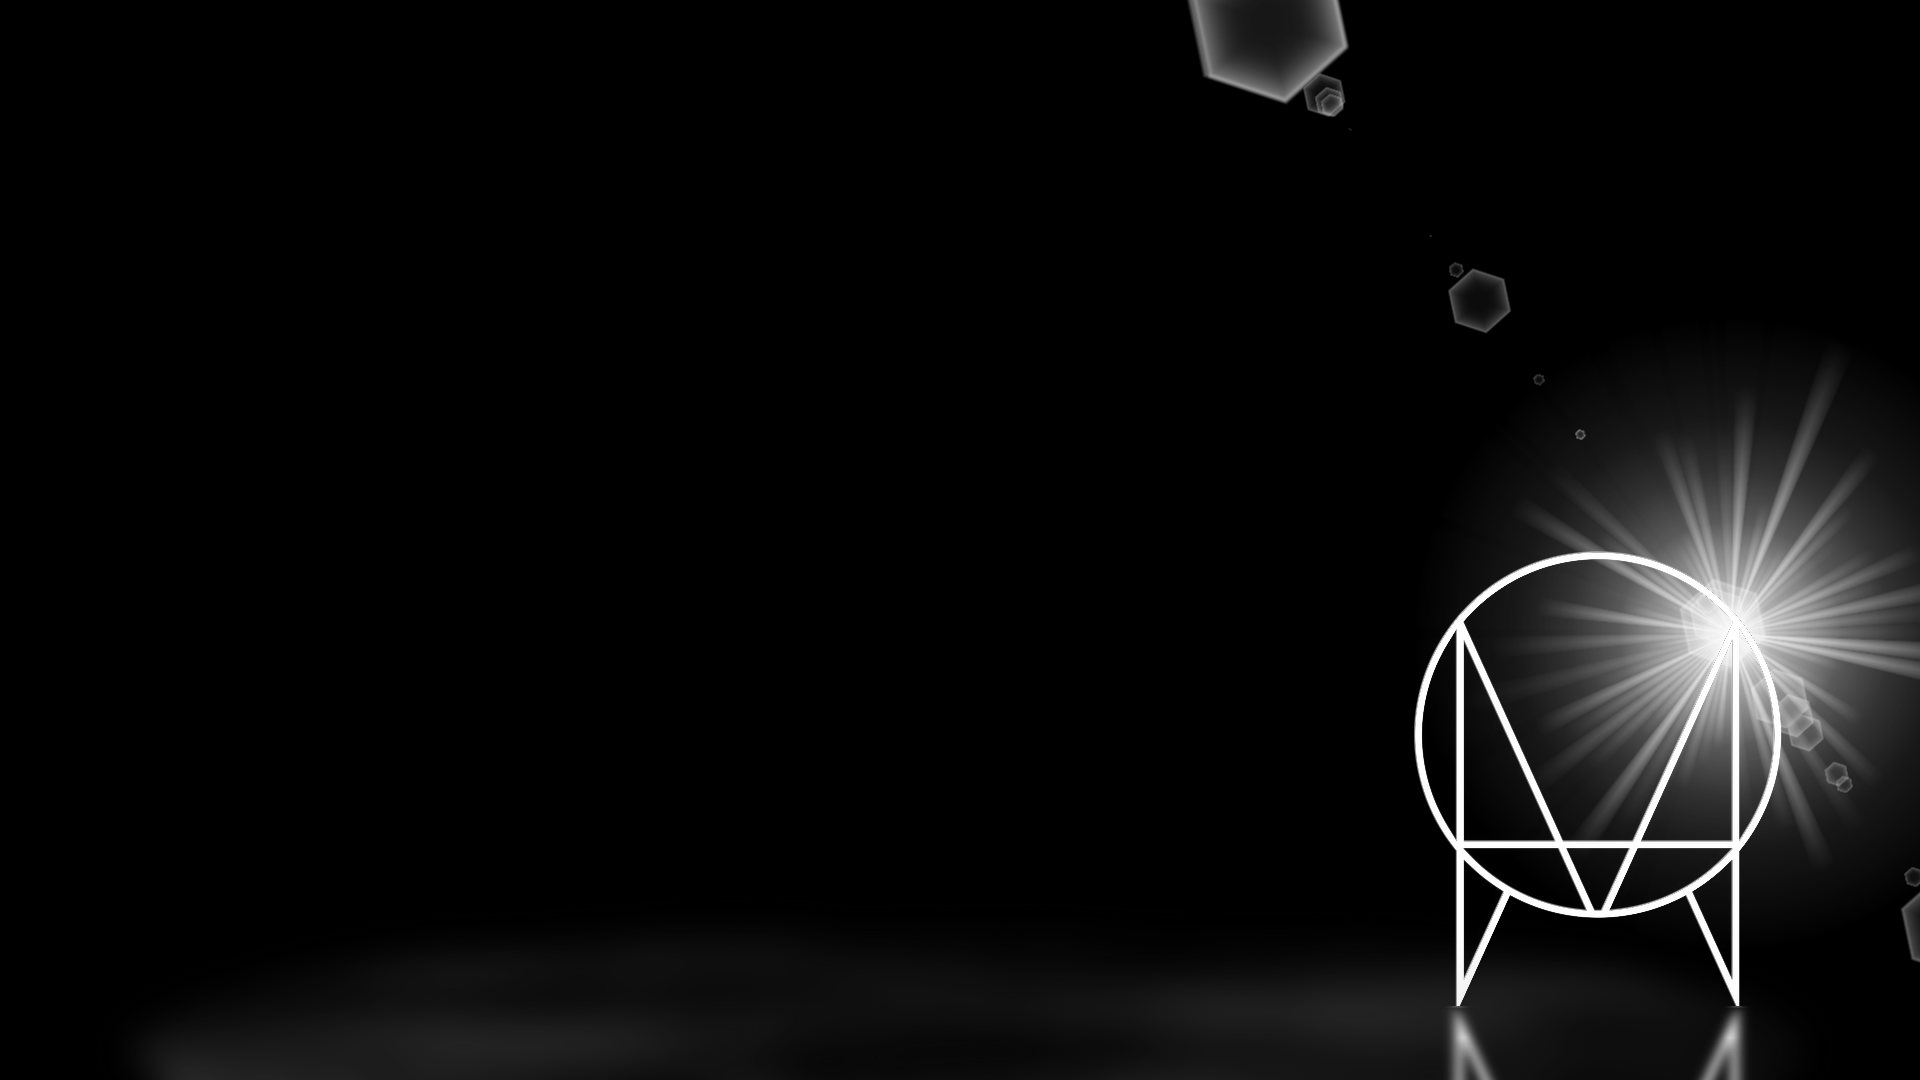 Simplistic OWSLA wallpapers [1920 x 1080] by SuperSecretBrony on